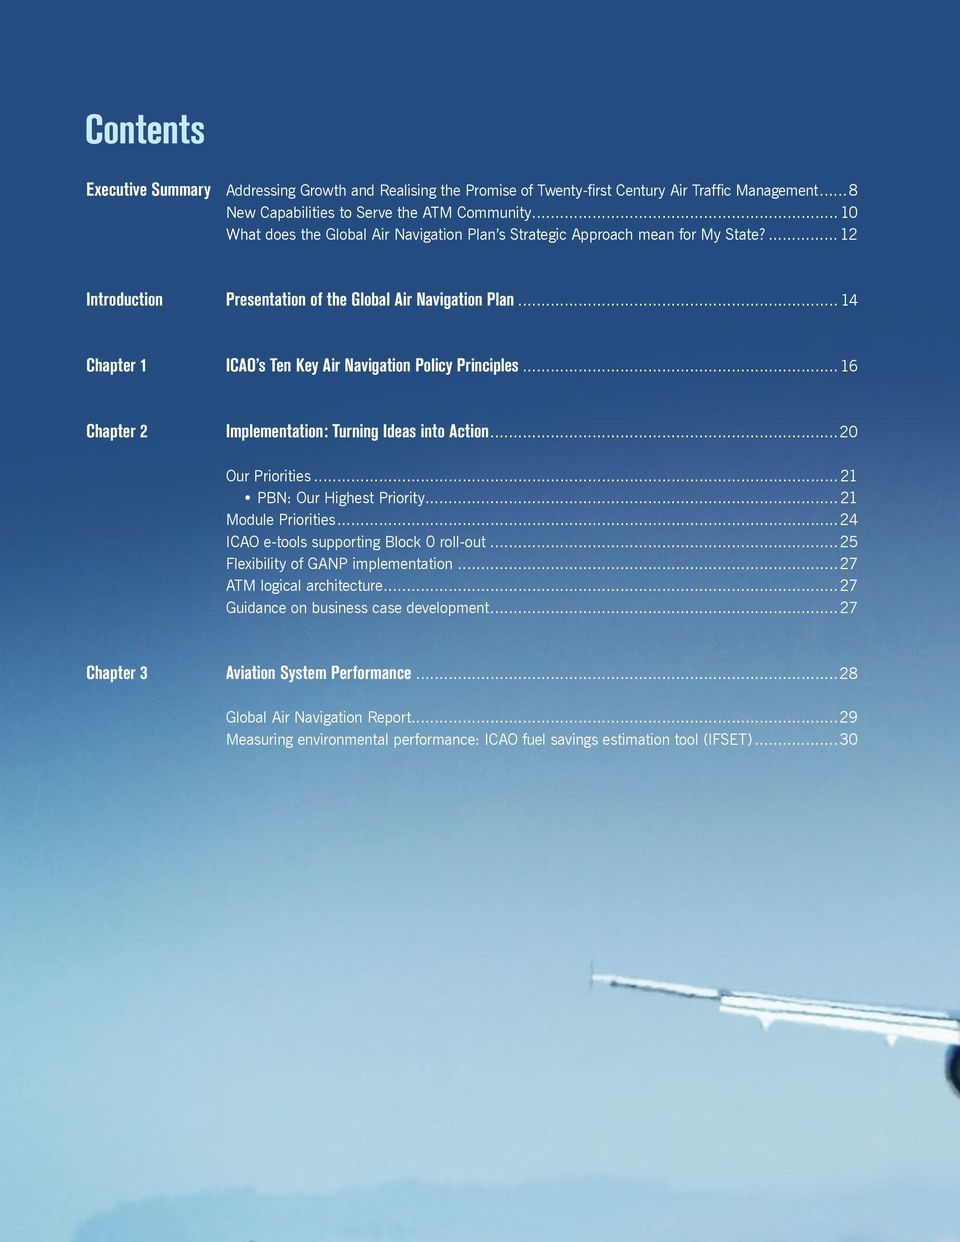 .. 14 Chapter 1 ICAO s Ten Key Air Navigation Policy Principles... 16 Chapter 2 Implementation: Turning Ideas into Action...20 Our Priorities...21 PBN: Our Highest Priority...21 Module Priorities.